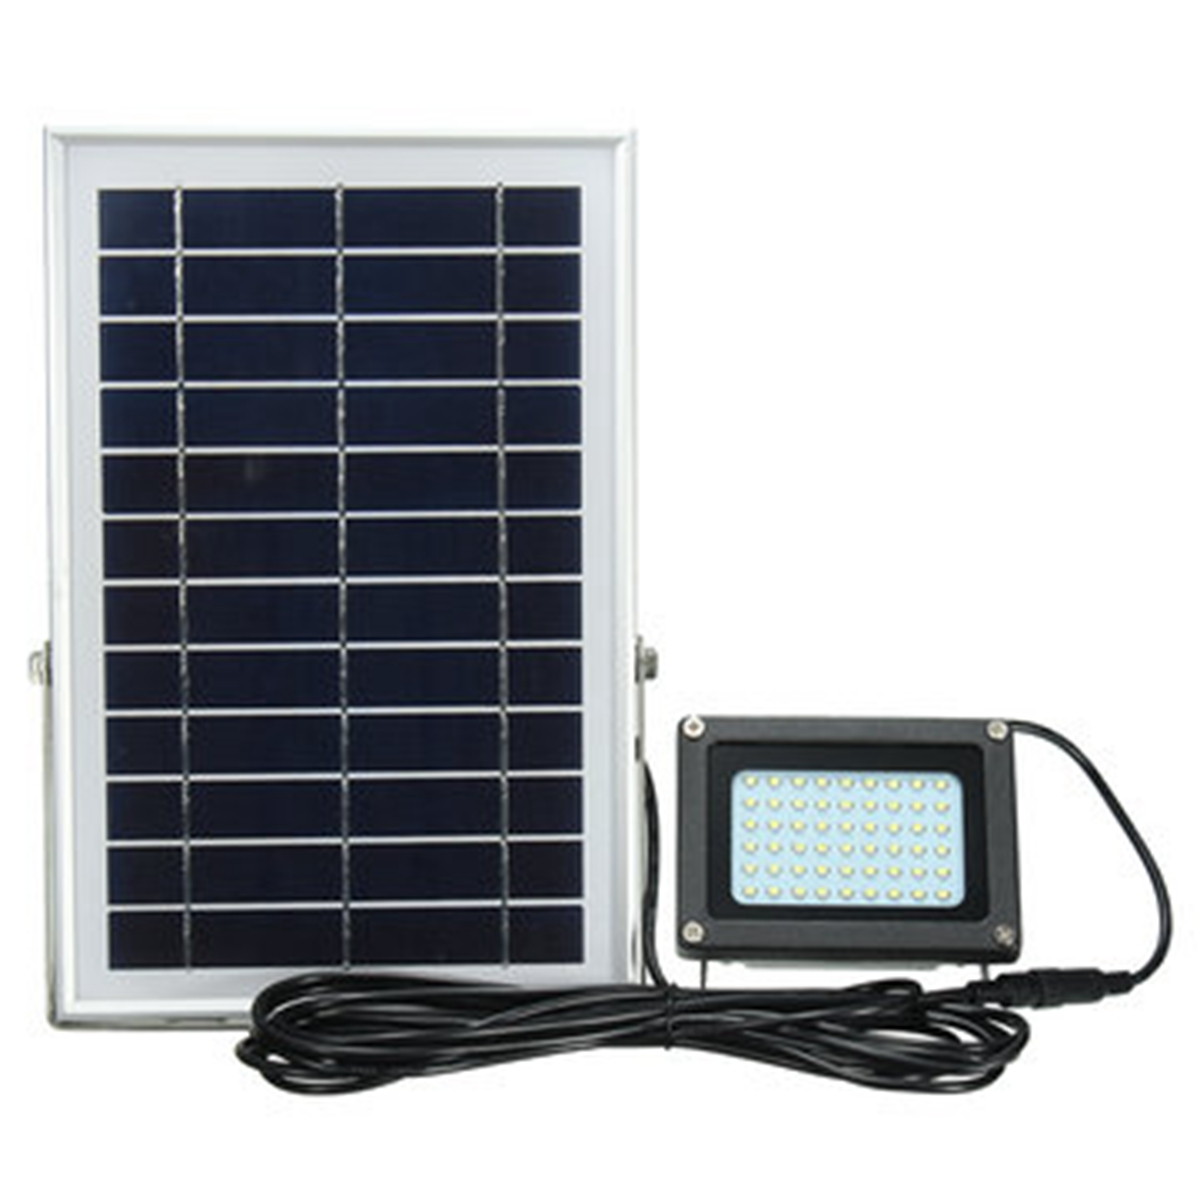 Outdoor Waterproof 54 LED Solar Power Modes 5m Cable Automatic Solar Powered LED Flood Lamp Security Light for Garden Yard Wall youoklight 0 5w 3 led white light mini waterproof solar powered fence garden lamp black